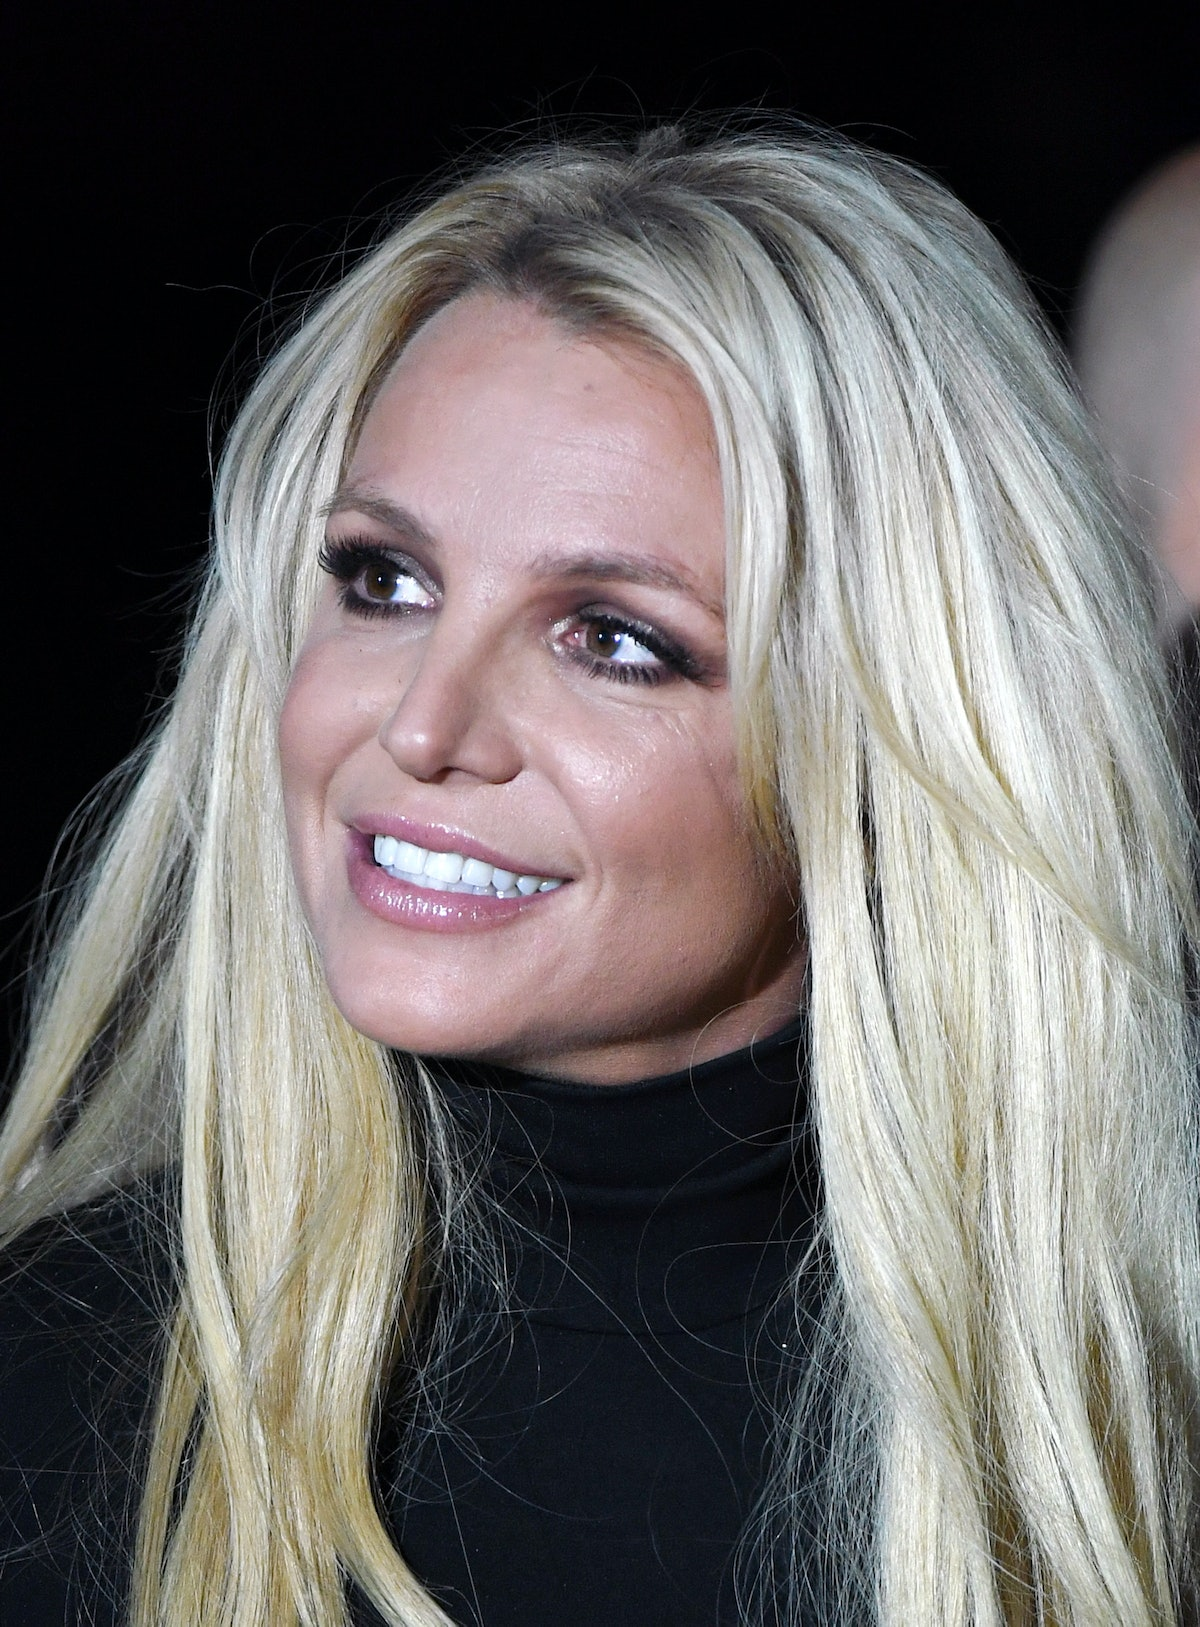 Britney Spears' Instagram posts are vetted by a team, which confirms a fan theory.